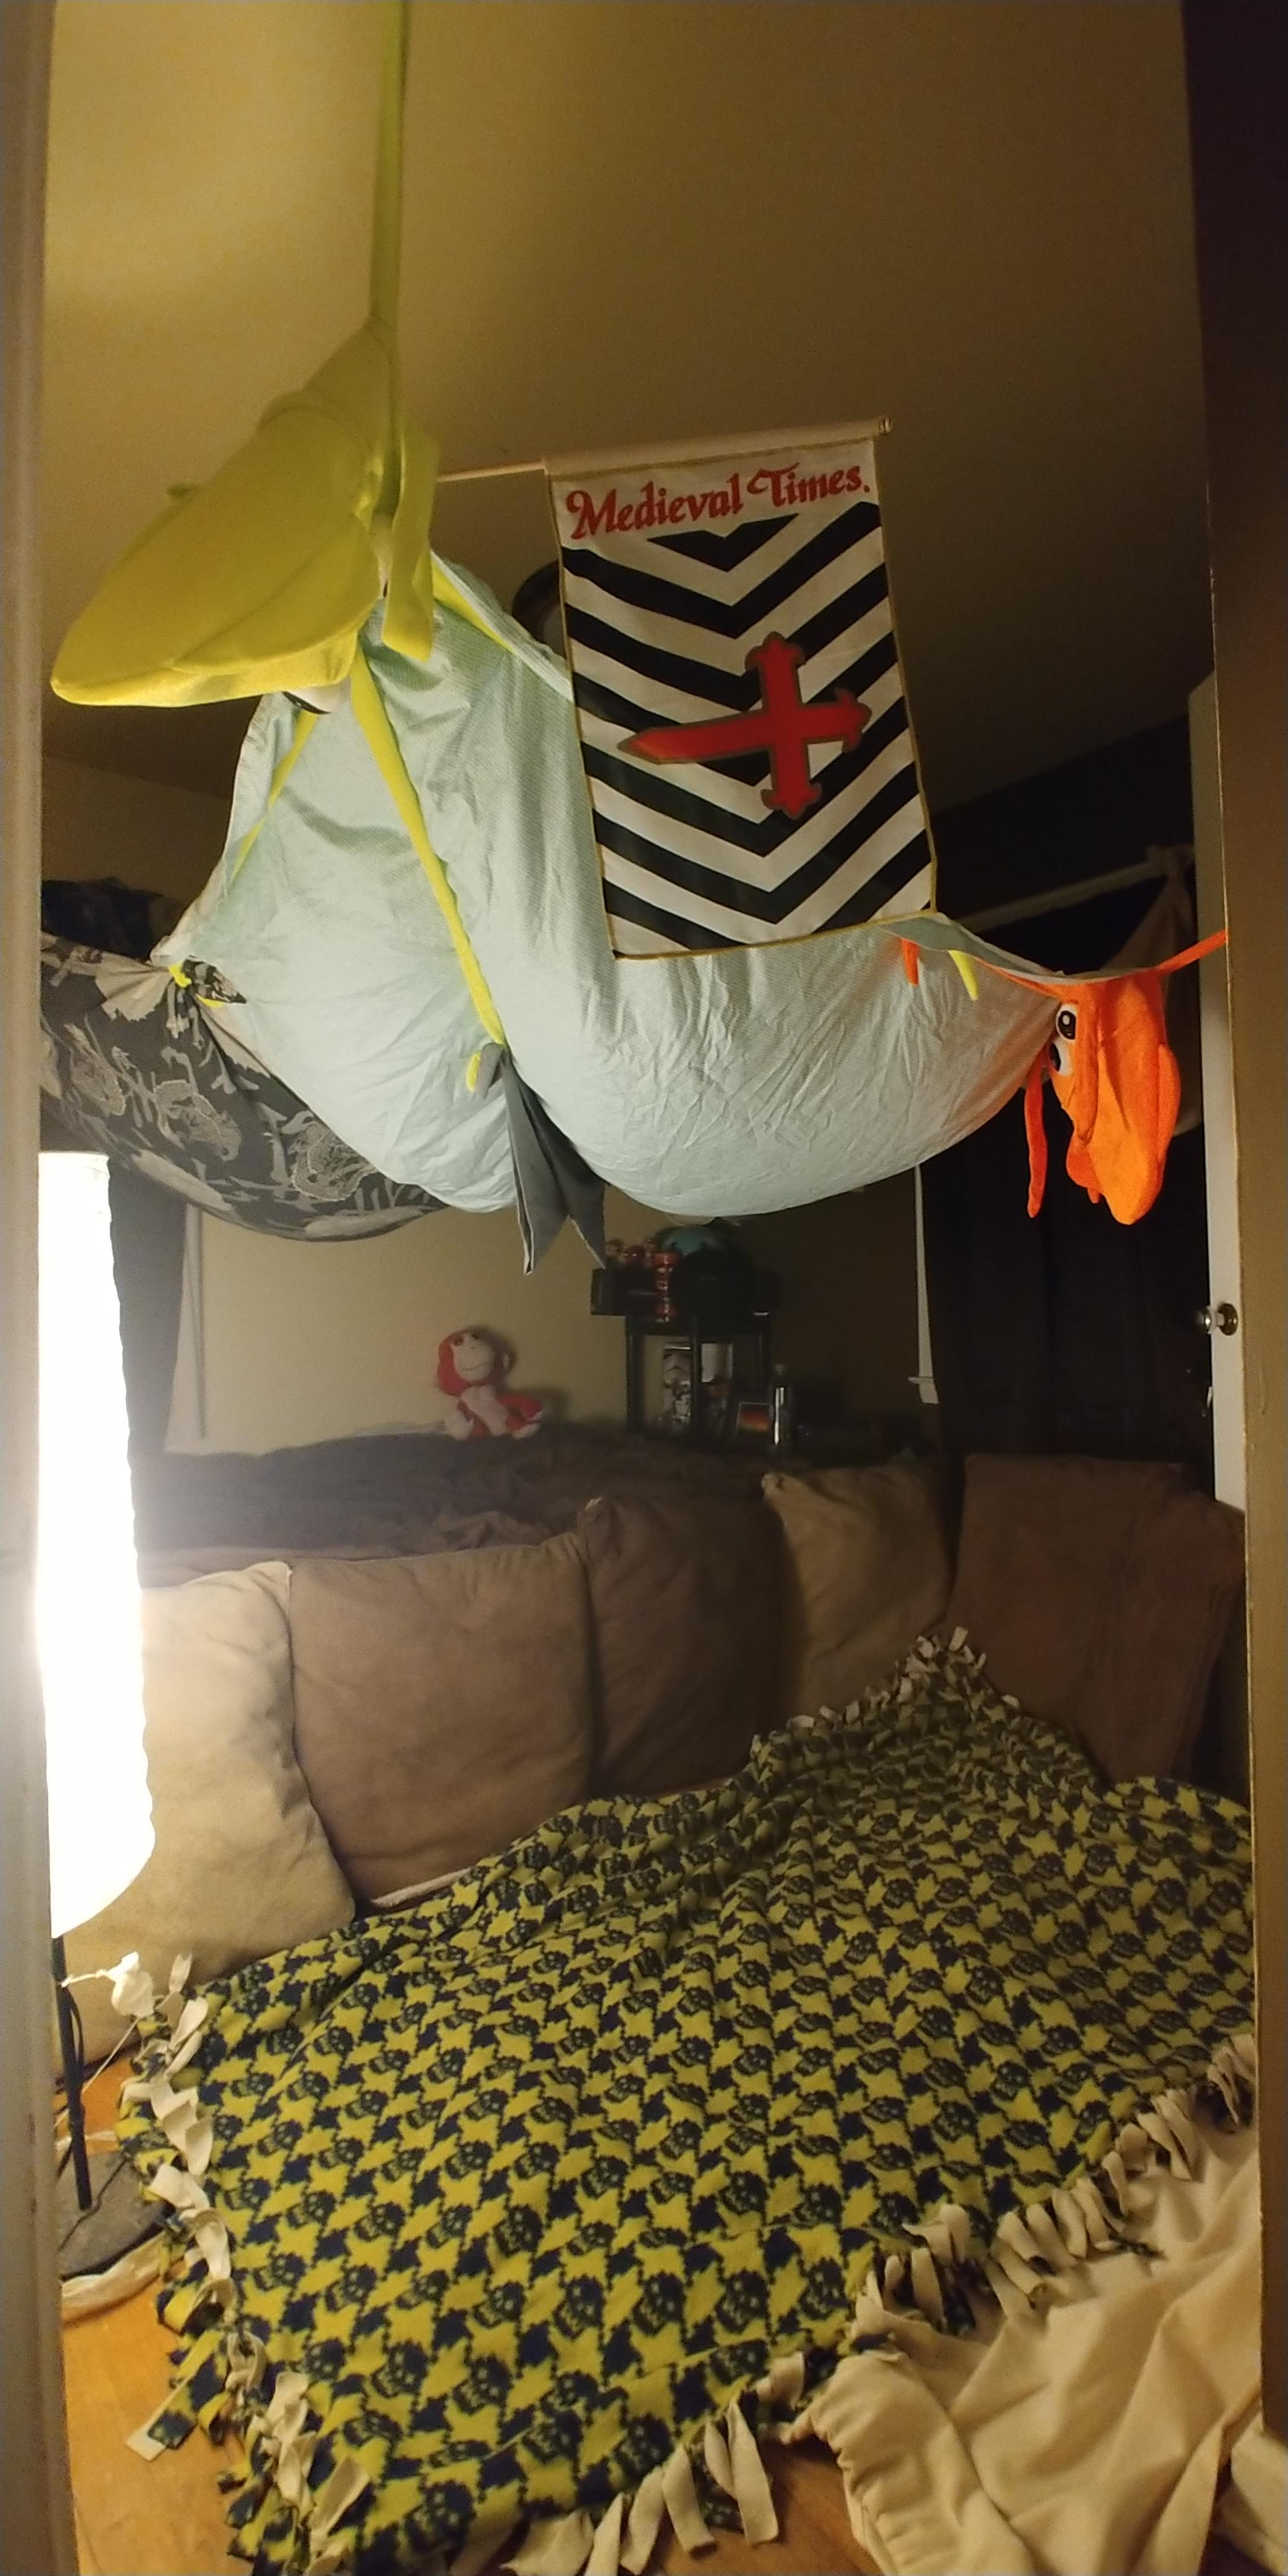 i decided to make a pillow fort d pics